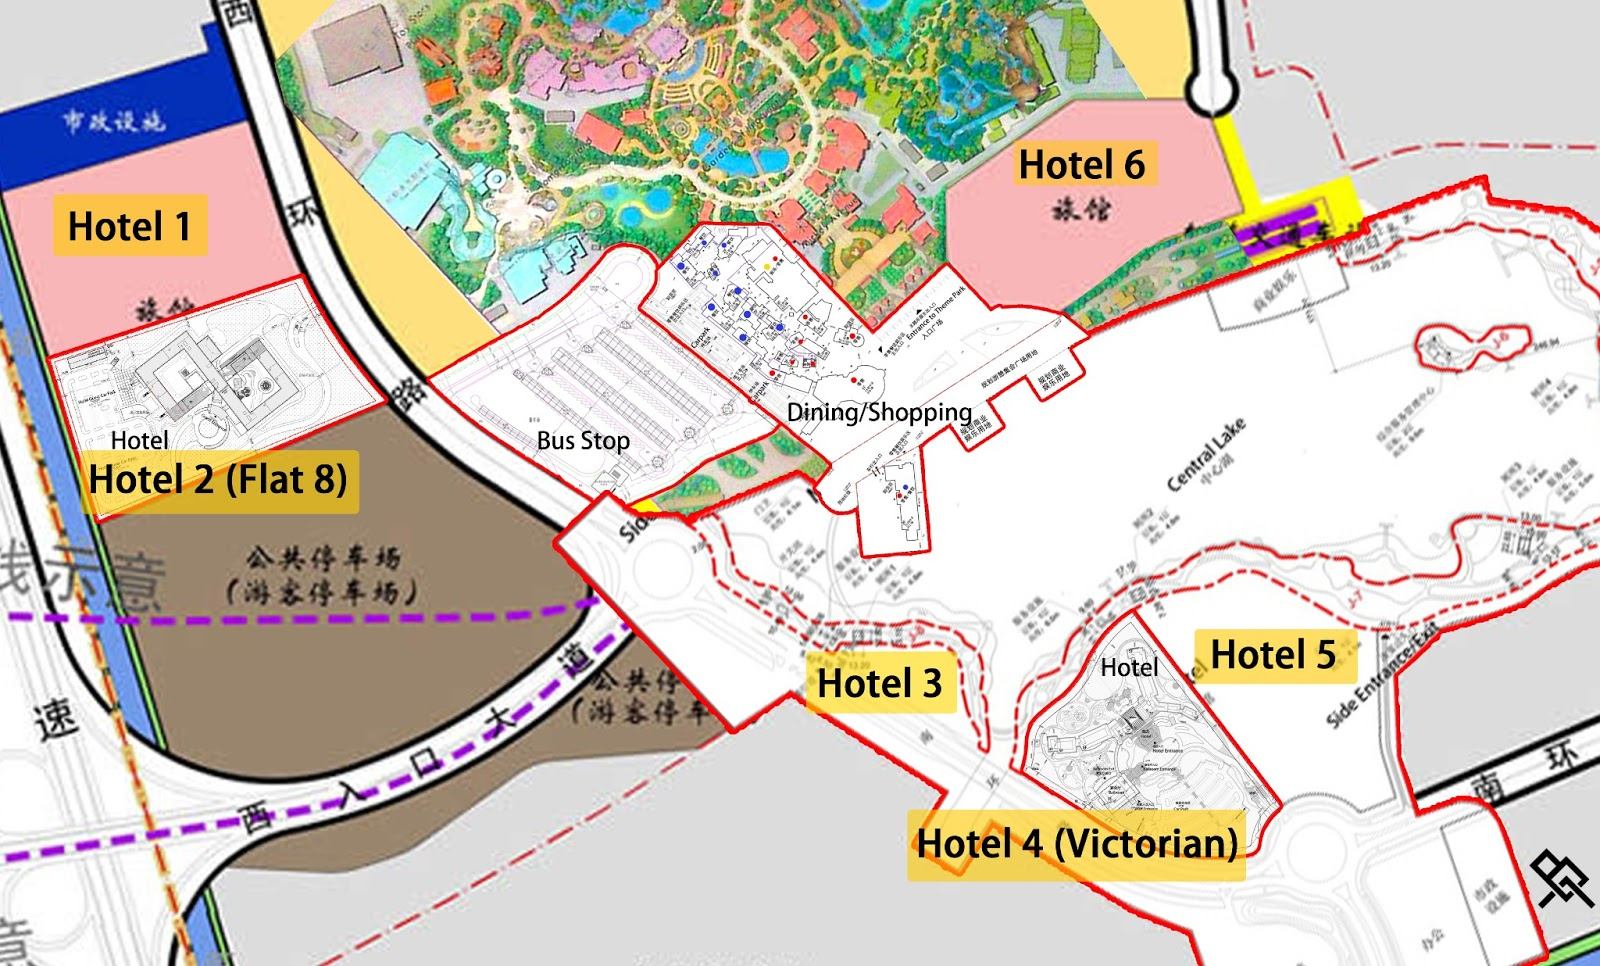 [Shanghai Disneyland] Toy Story Land (2018) Whole+Resort+Hotel